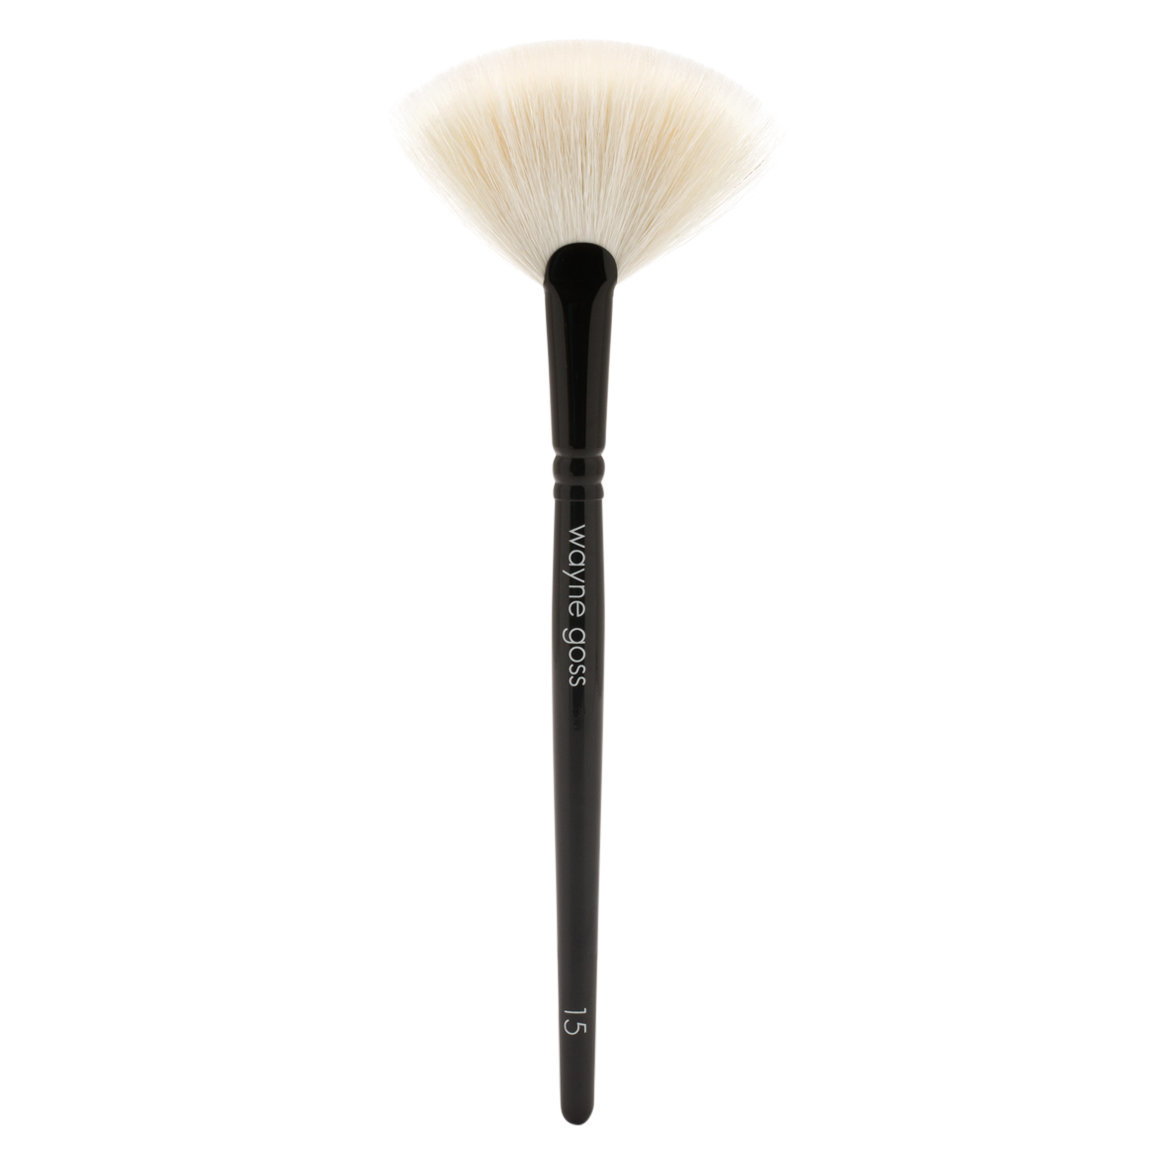 Wayne Goss Brush 15 Fan Brush